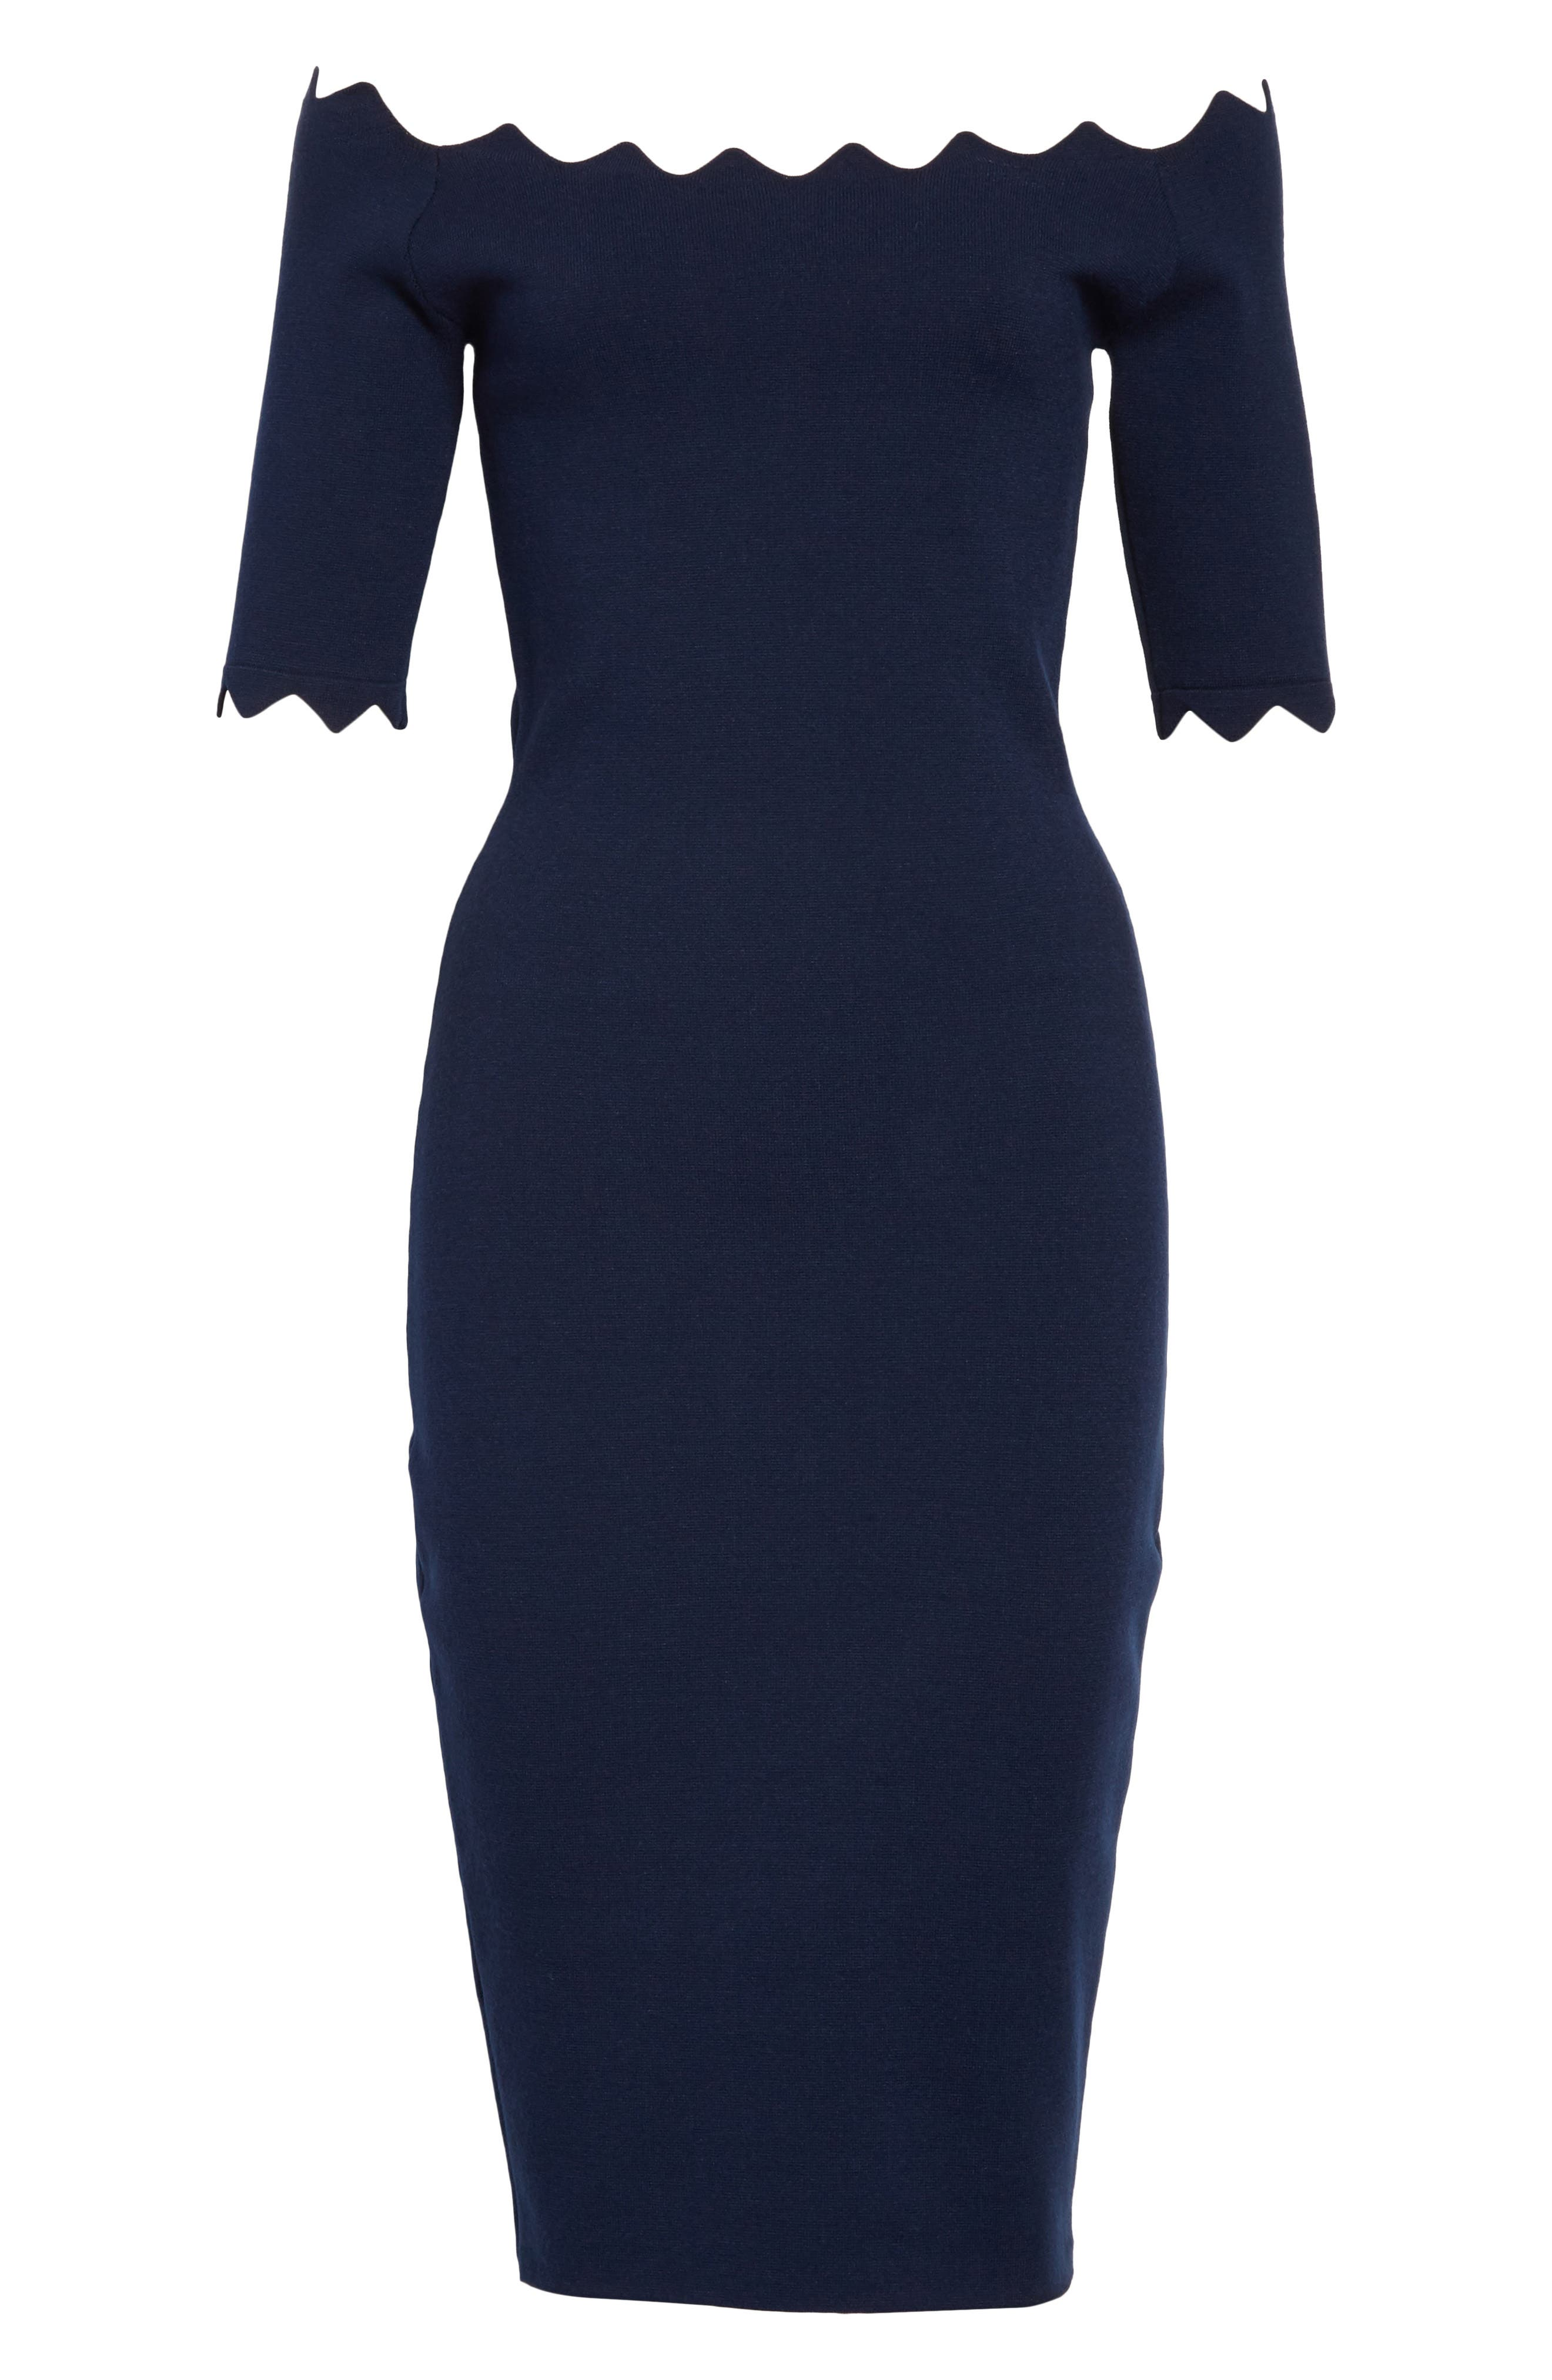 Scalloped Off the Shoulder Sheath Dress,                             Alternate thumbnail 6, color,                             410